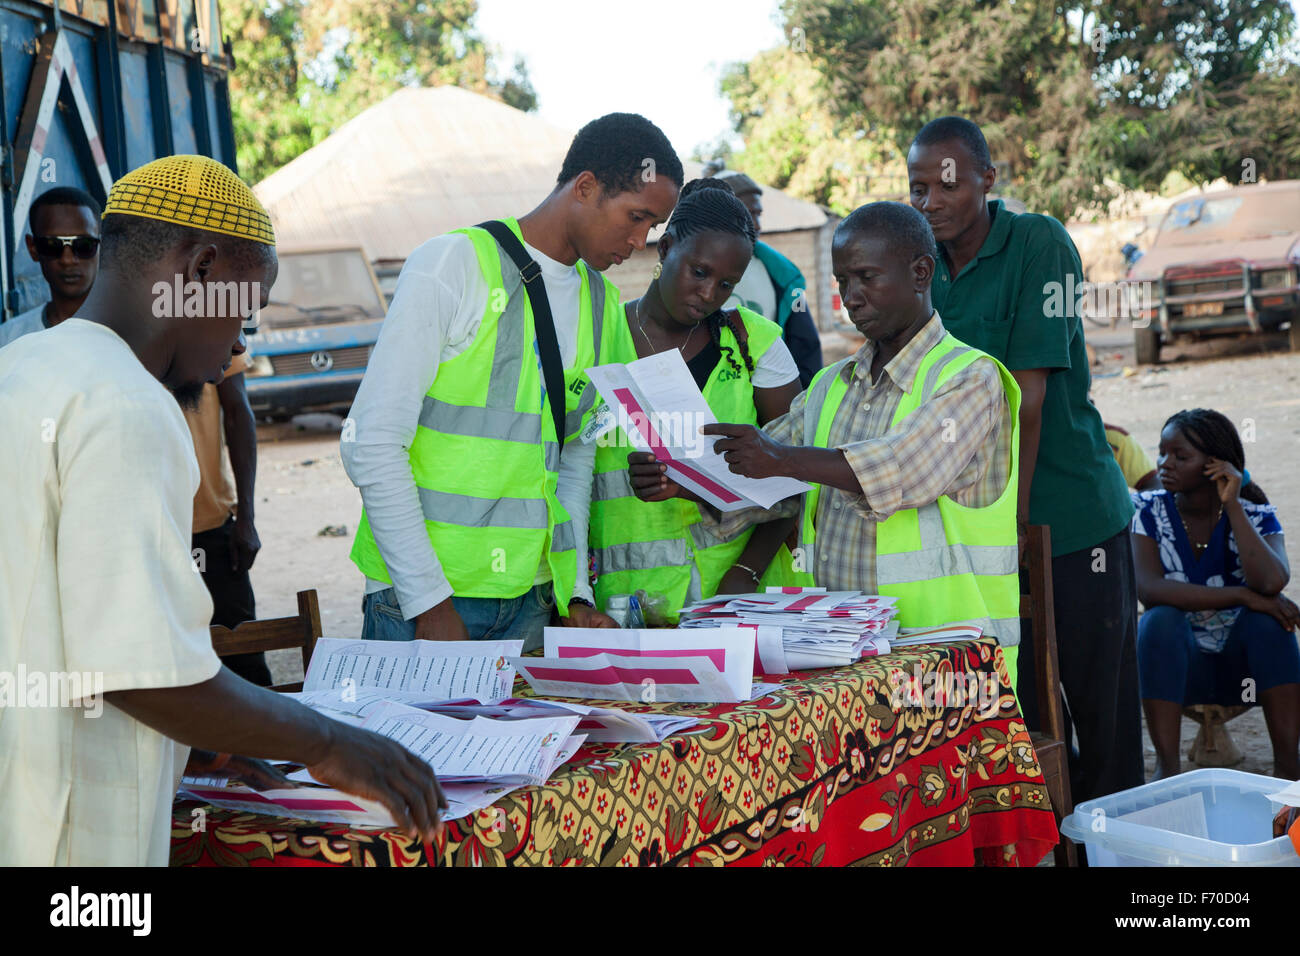 Polling station, ballot boxes and international election observer in rural Guinea-Bissau during general elections - Stock Image